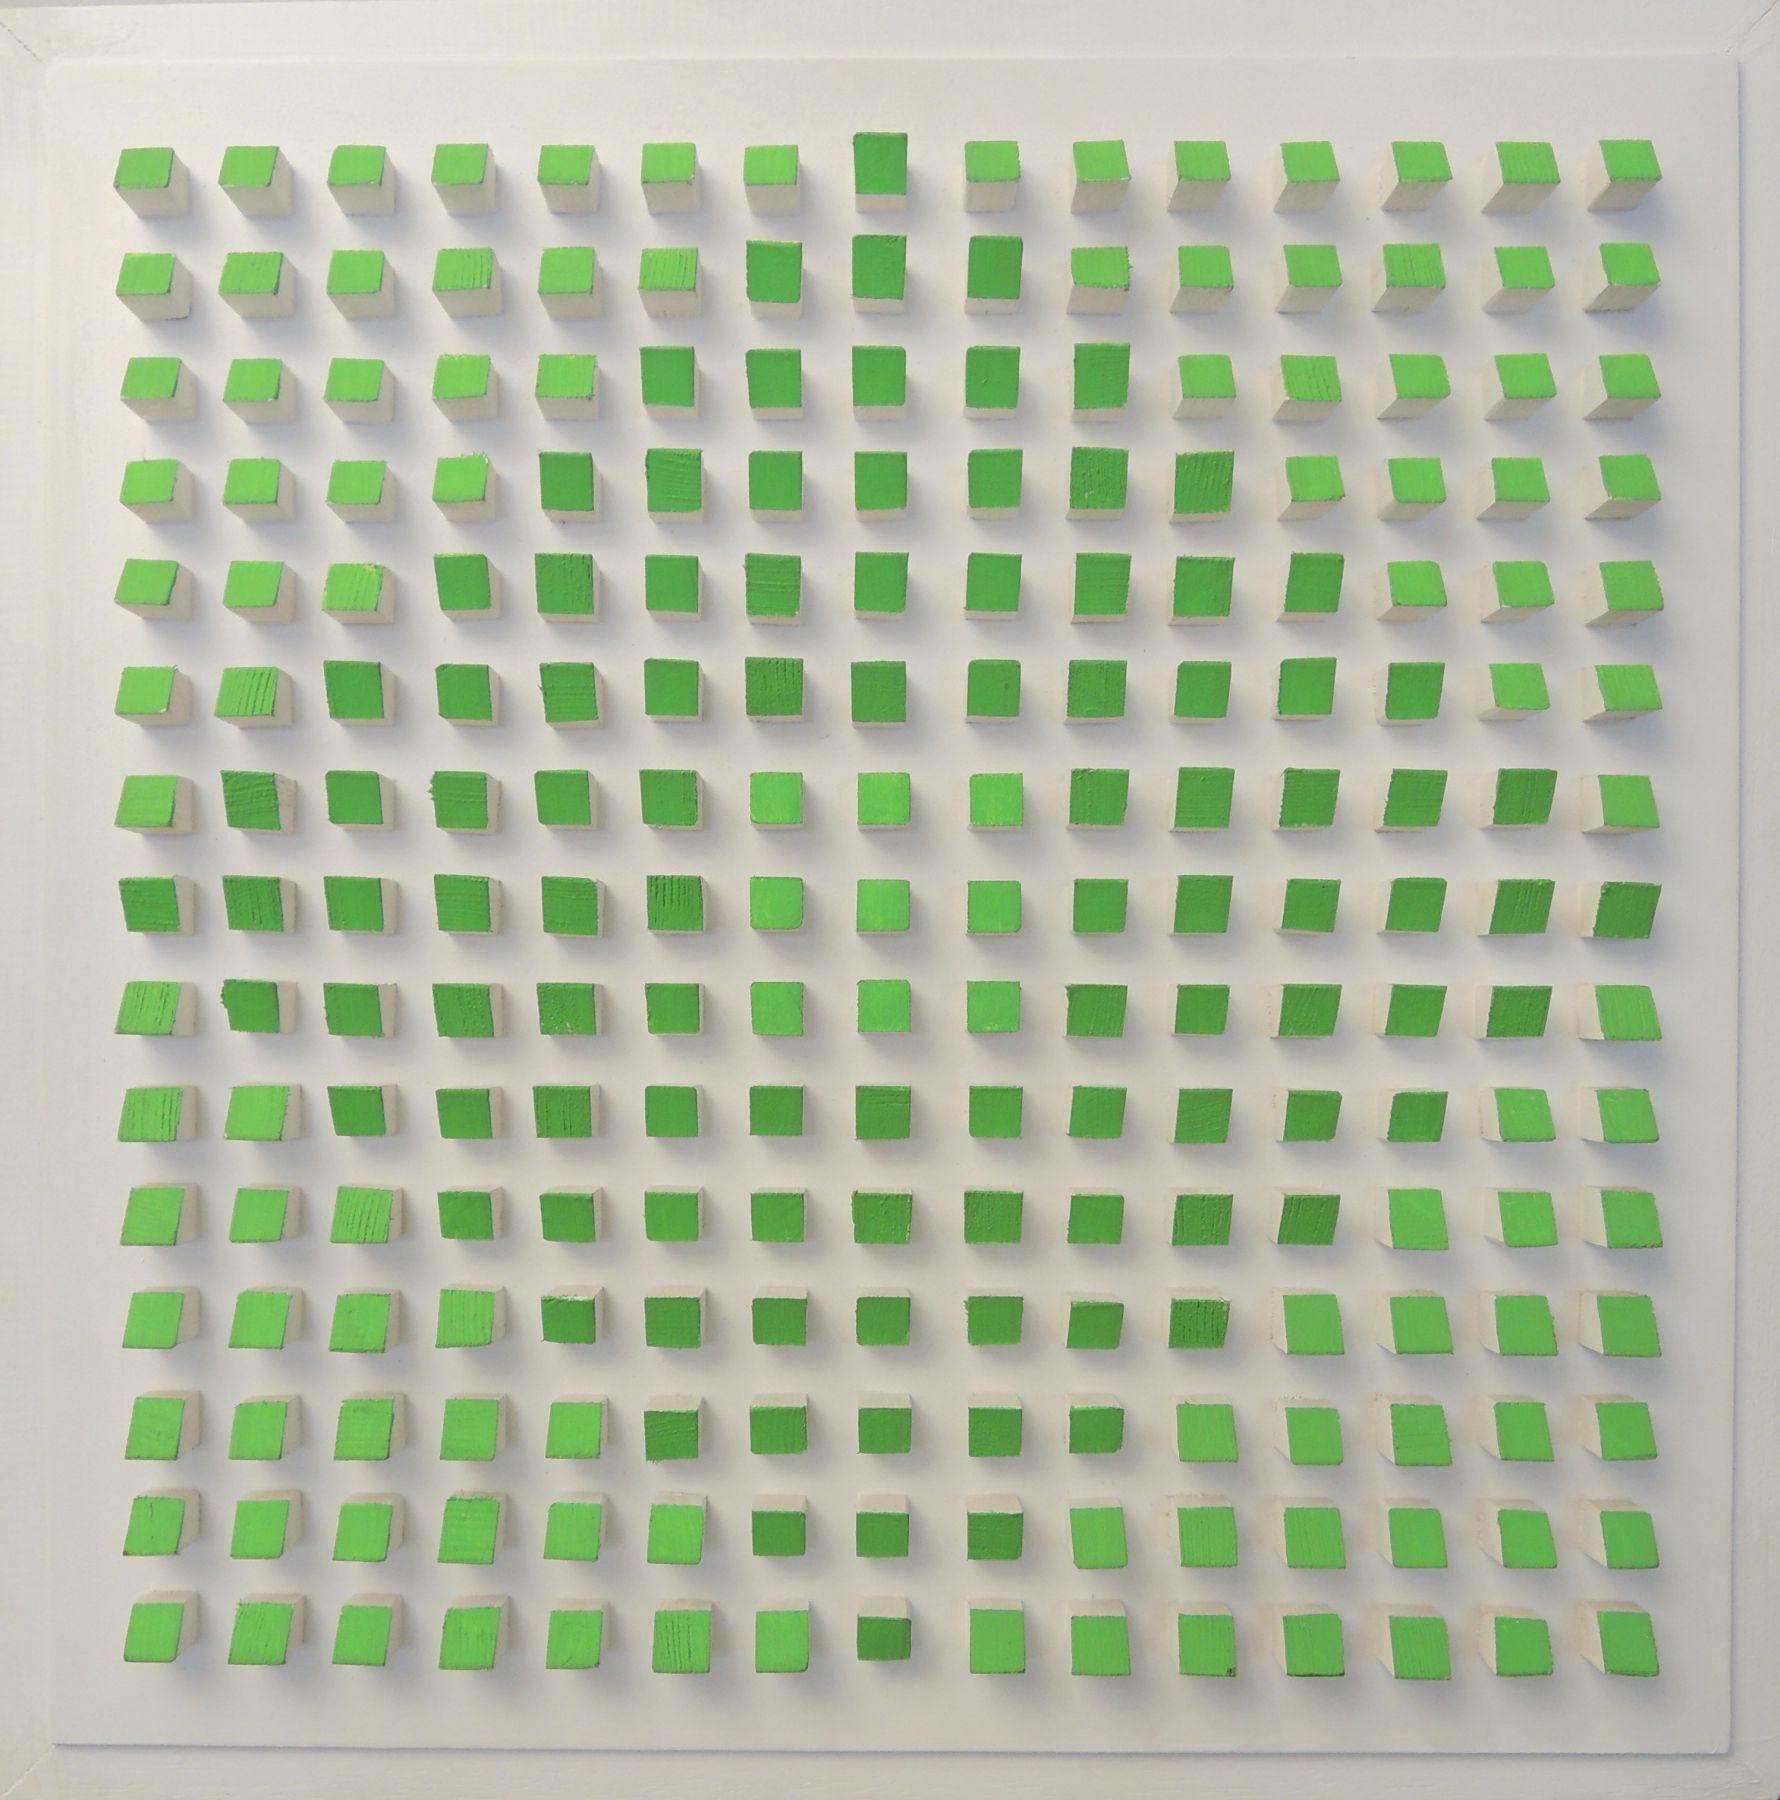 Luis Tomasello, Object Plastique Nº 879, 2008. Acrylic on wood, 17 3/4 x 17 1/4 x 2 1/8 in.